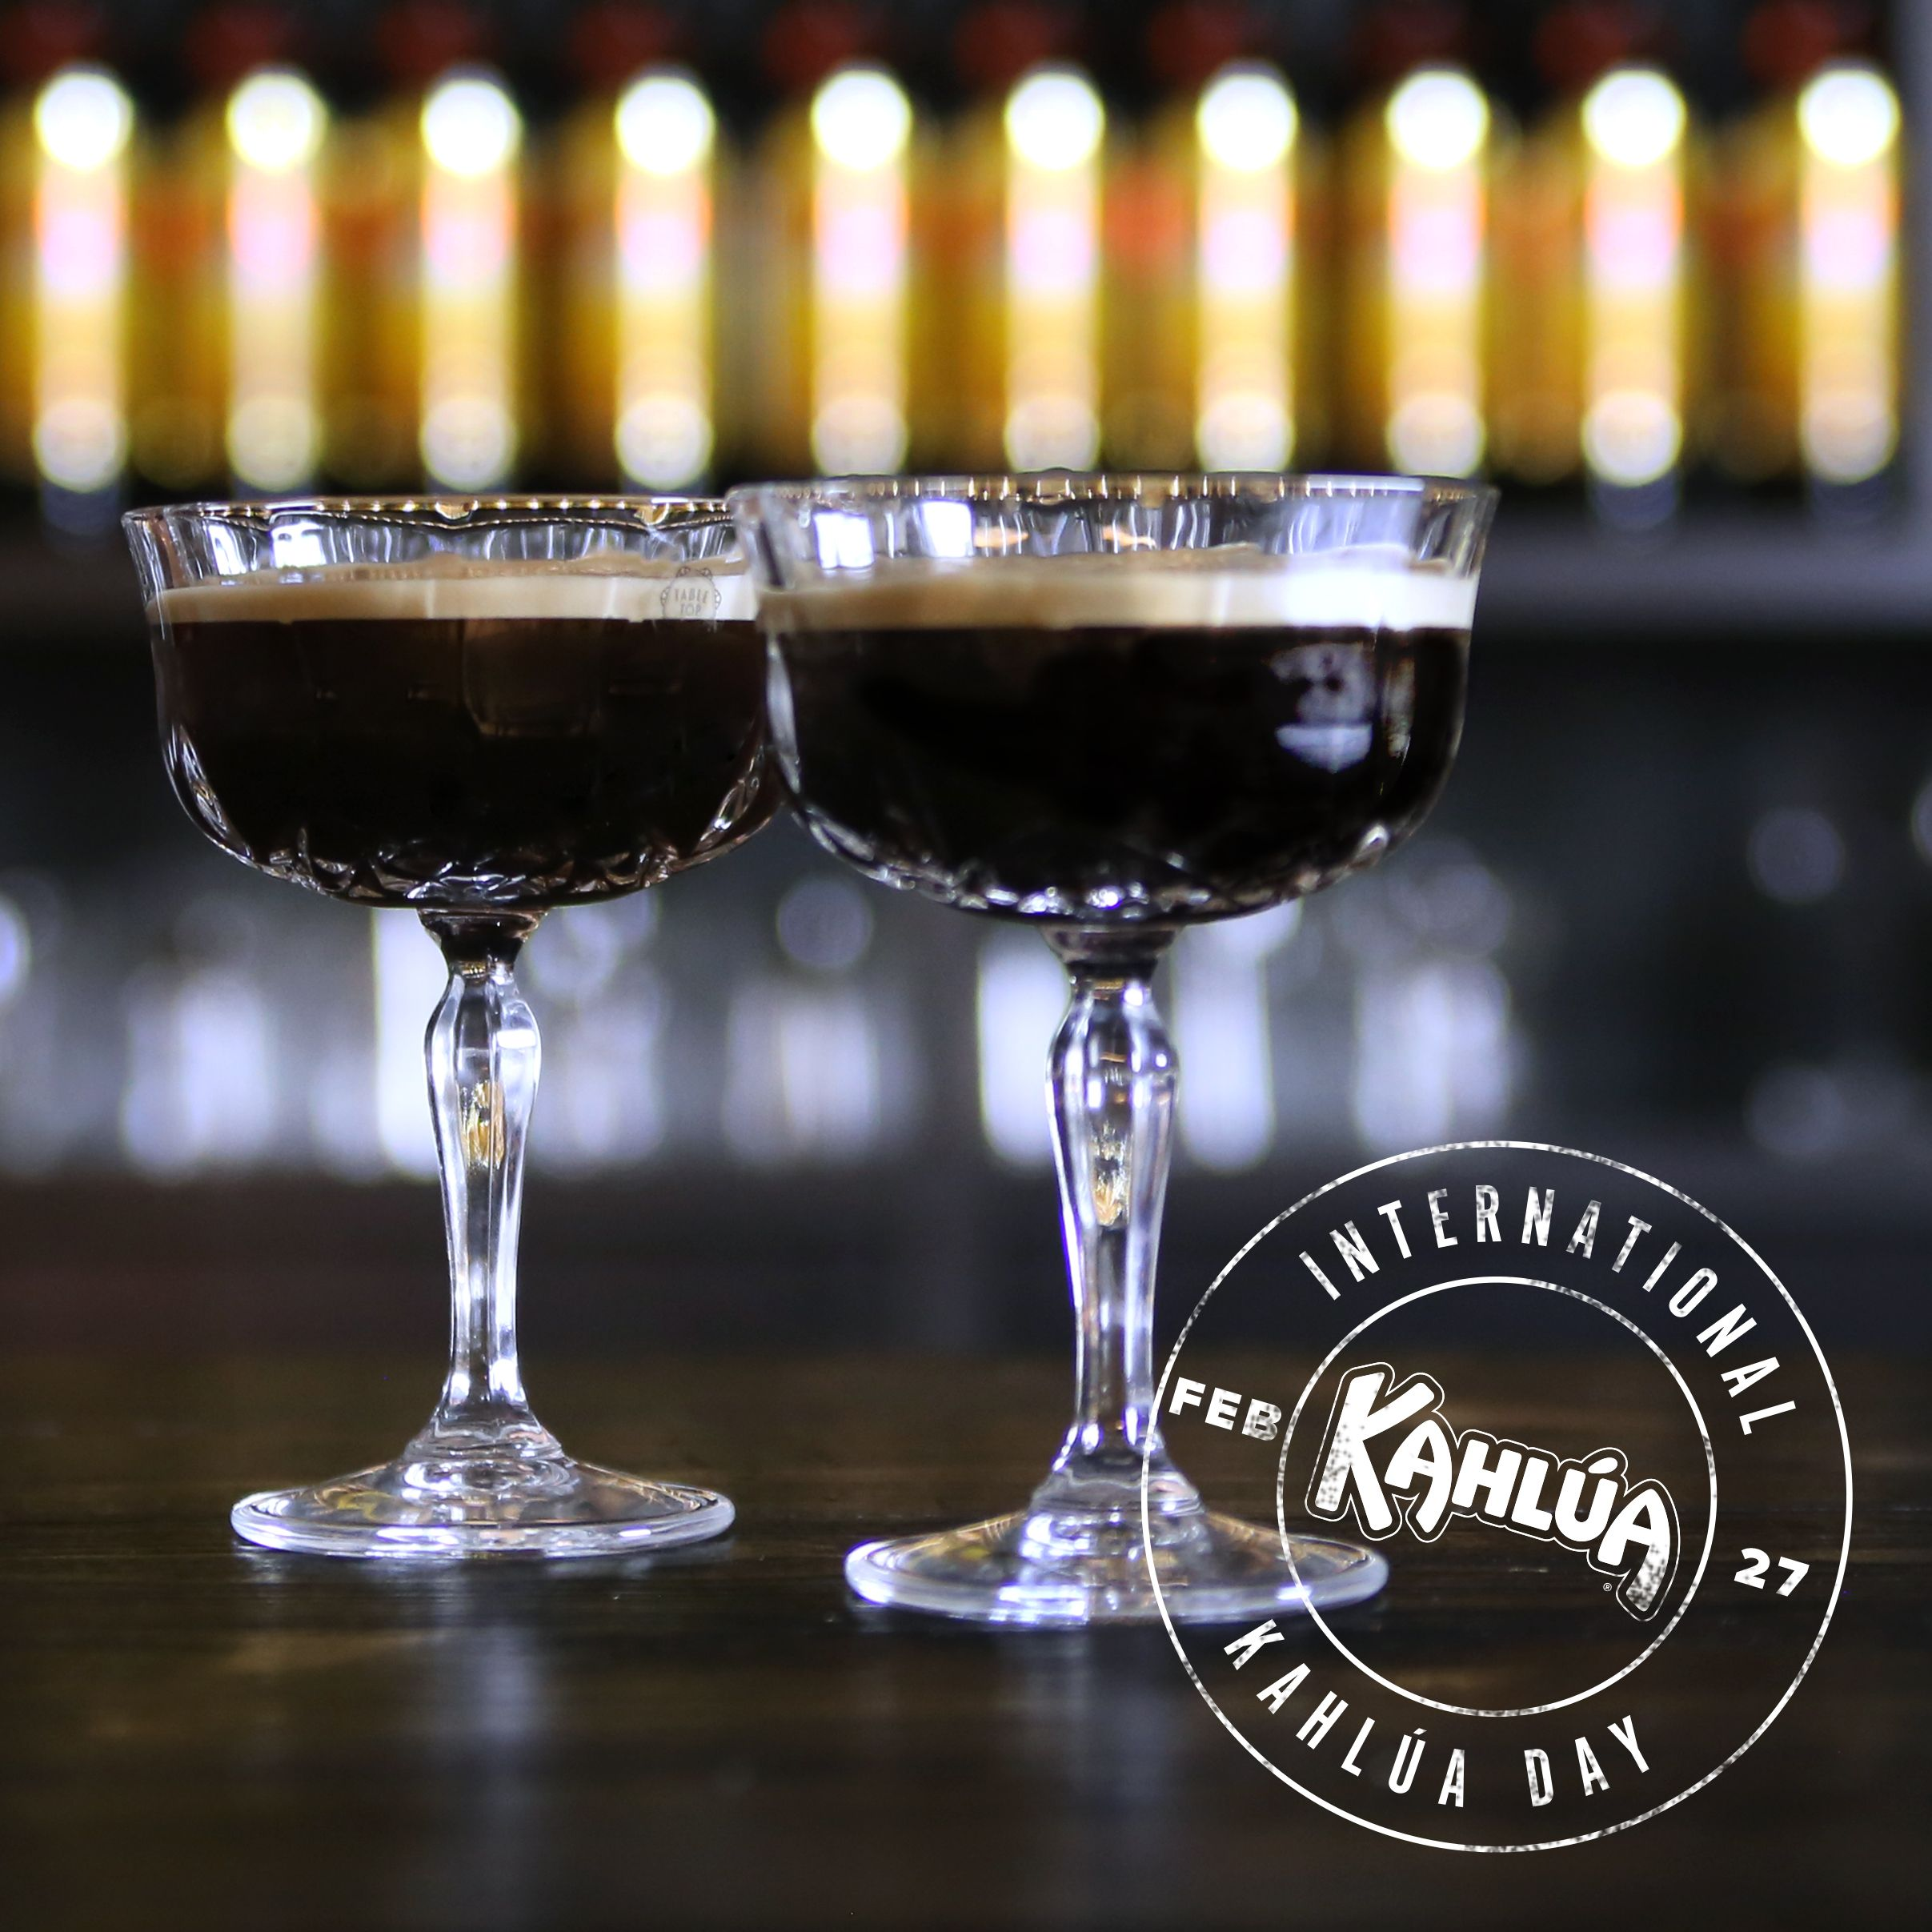 Pin by Kahlúa Coffee Liqueur on International Kahlúa Day